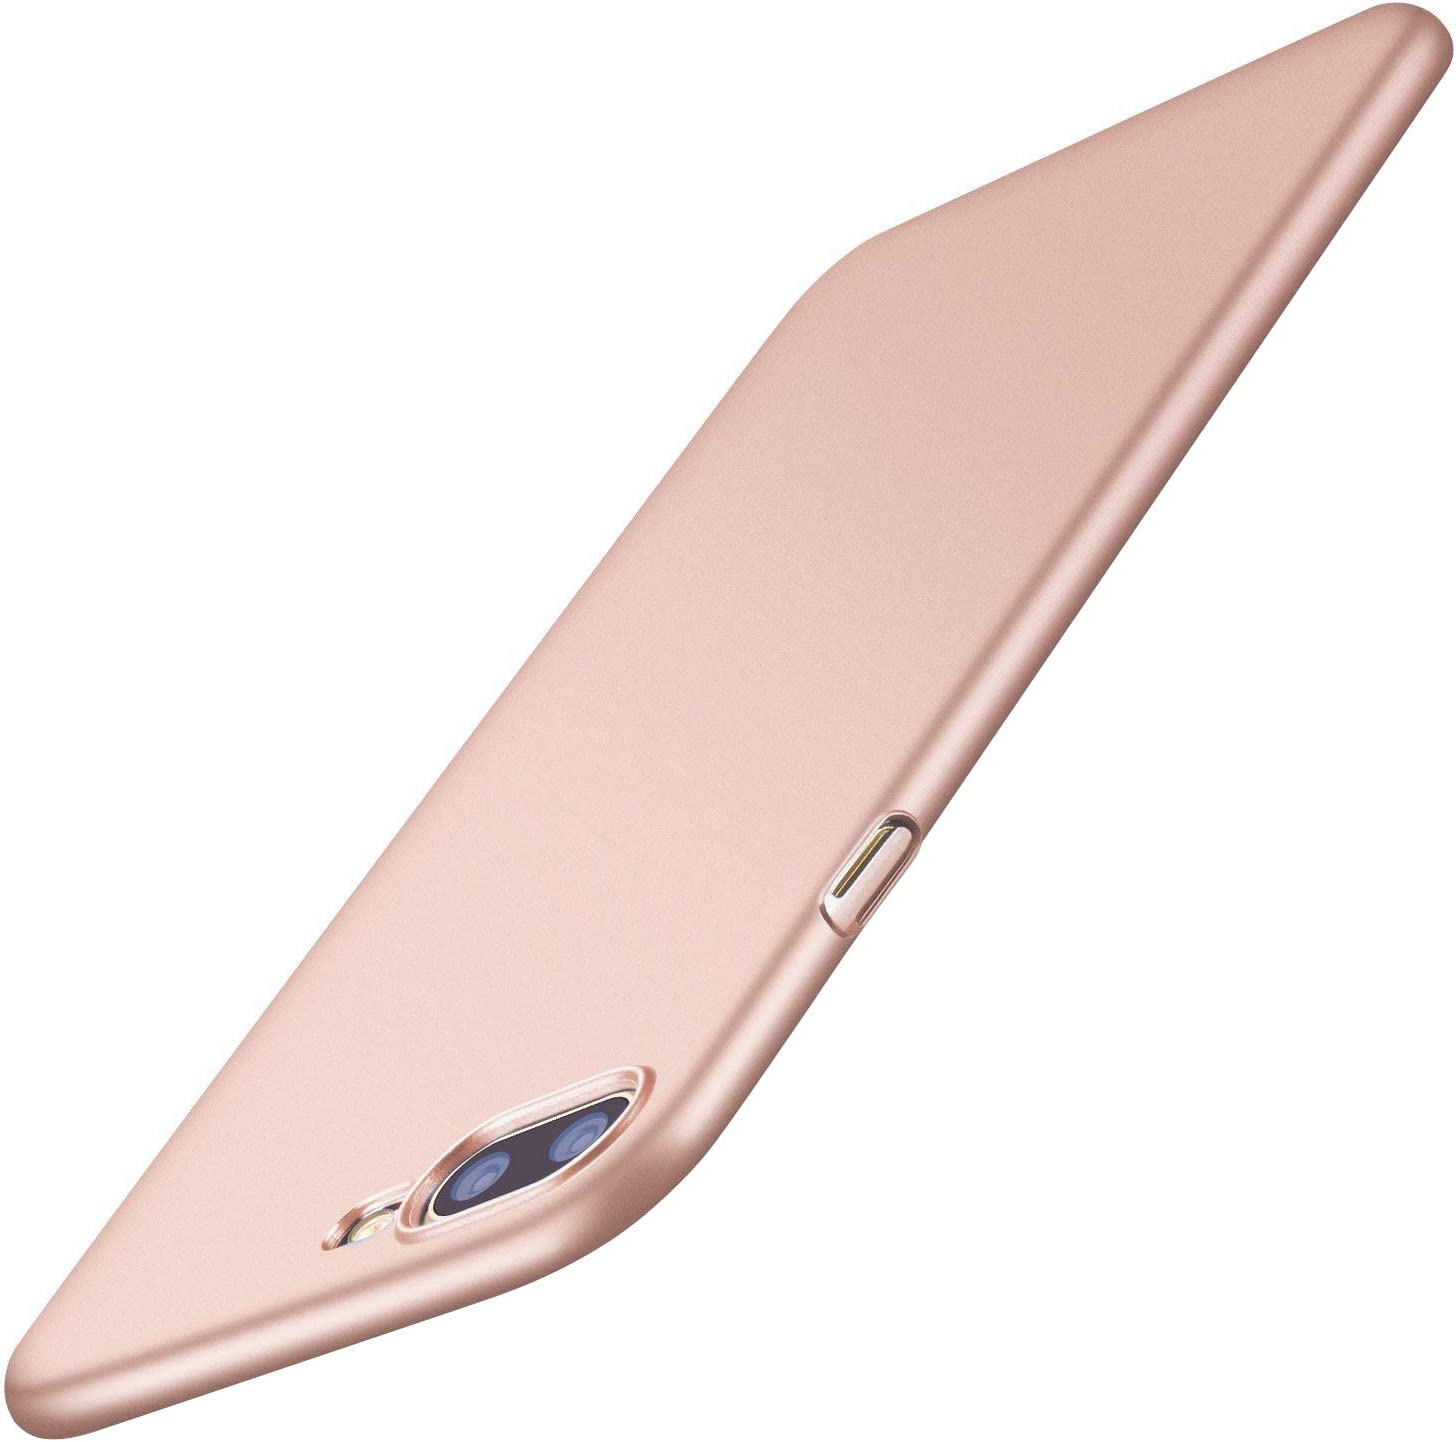 TORRAS Slim Fit Designed for iPhone 8 Plus Case/iPhone 7 Plus Case, Hard Plastic PC Ultra Thin Phone Cover Case with Matte Finish Coating Grip Compatible with iPhone 7 Plus / 8 Plus, Rose Gold